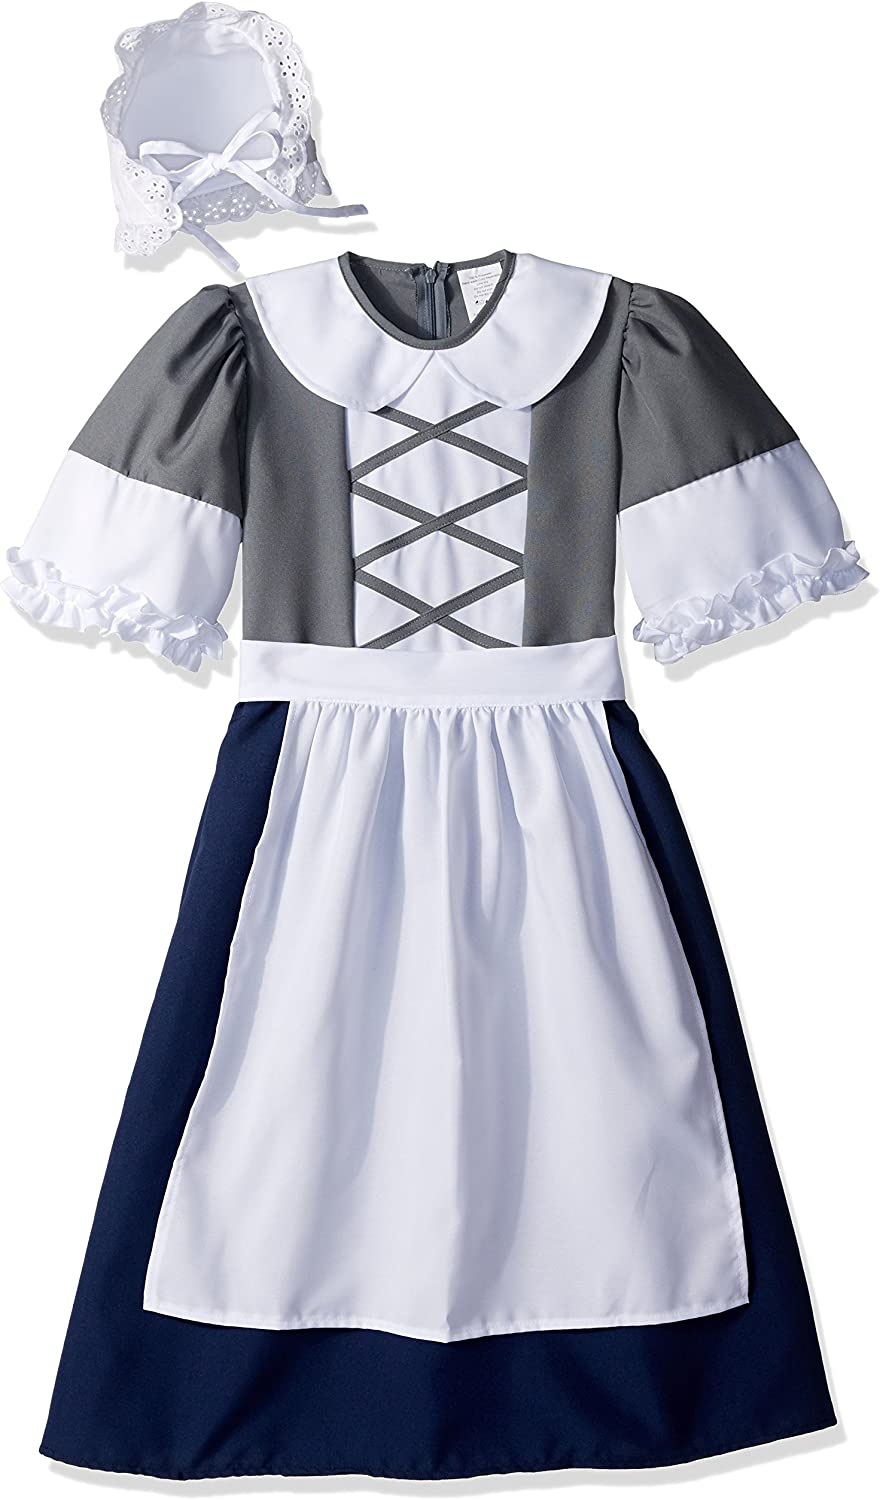 Childs Colonial Girl Costume